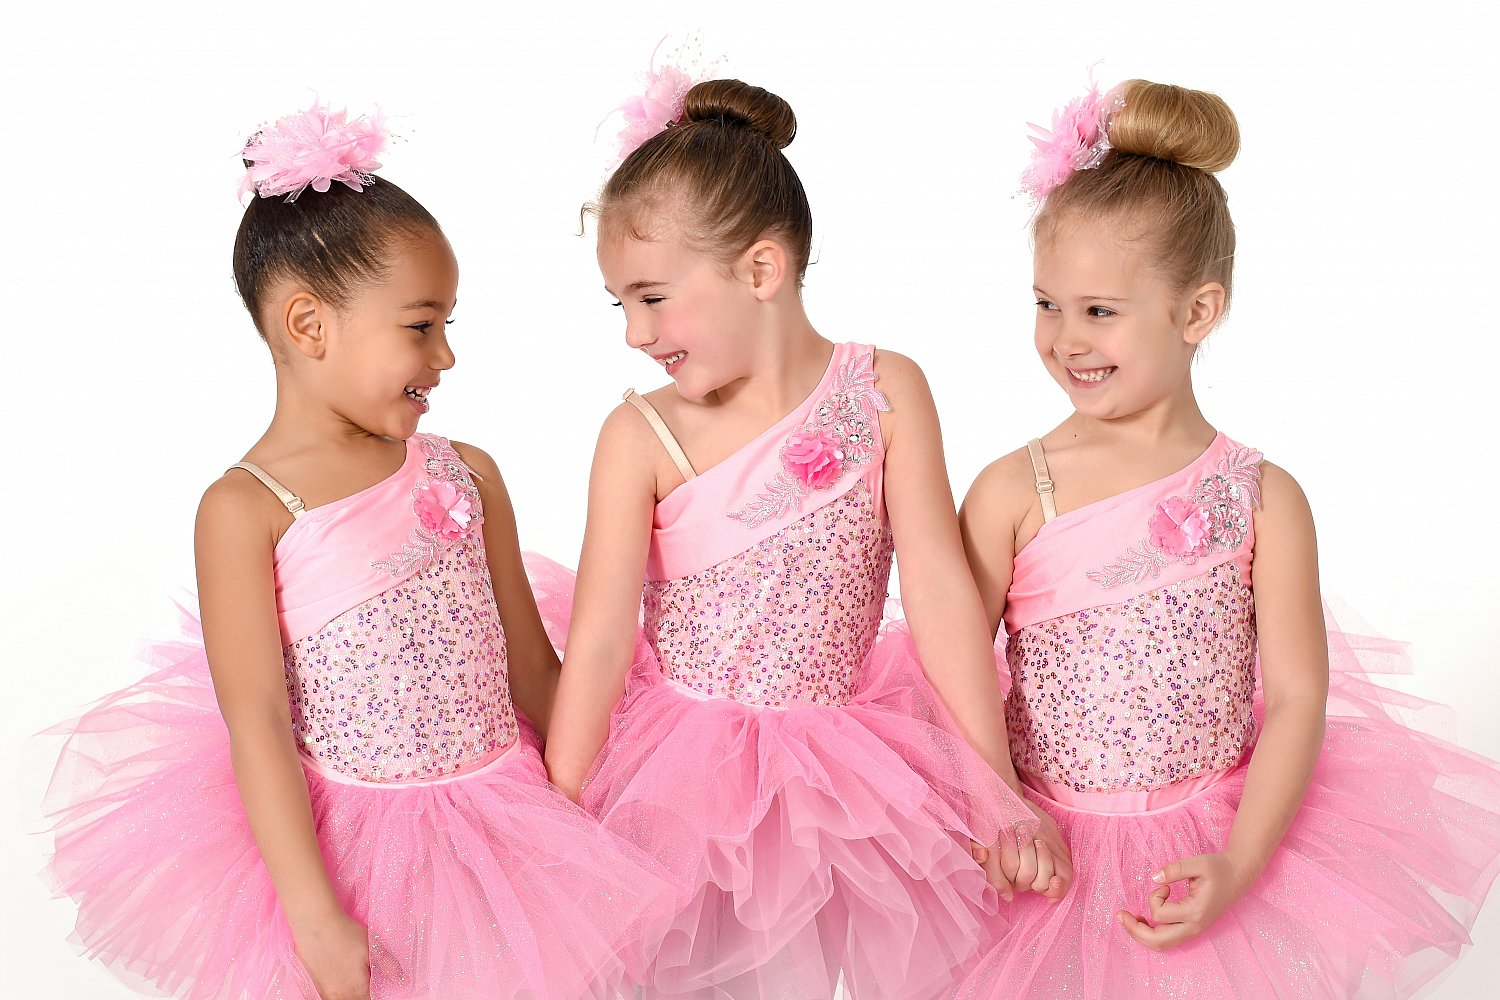 Prestige Dance Studio eGift Card: Sibling/Buddy Photos | Tues0781_Sharpened_4x6.jpg